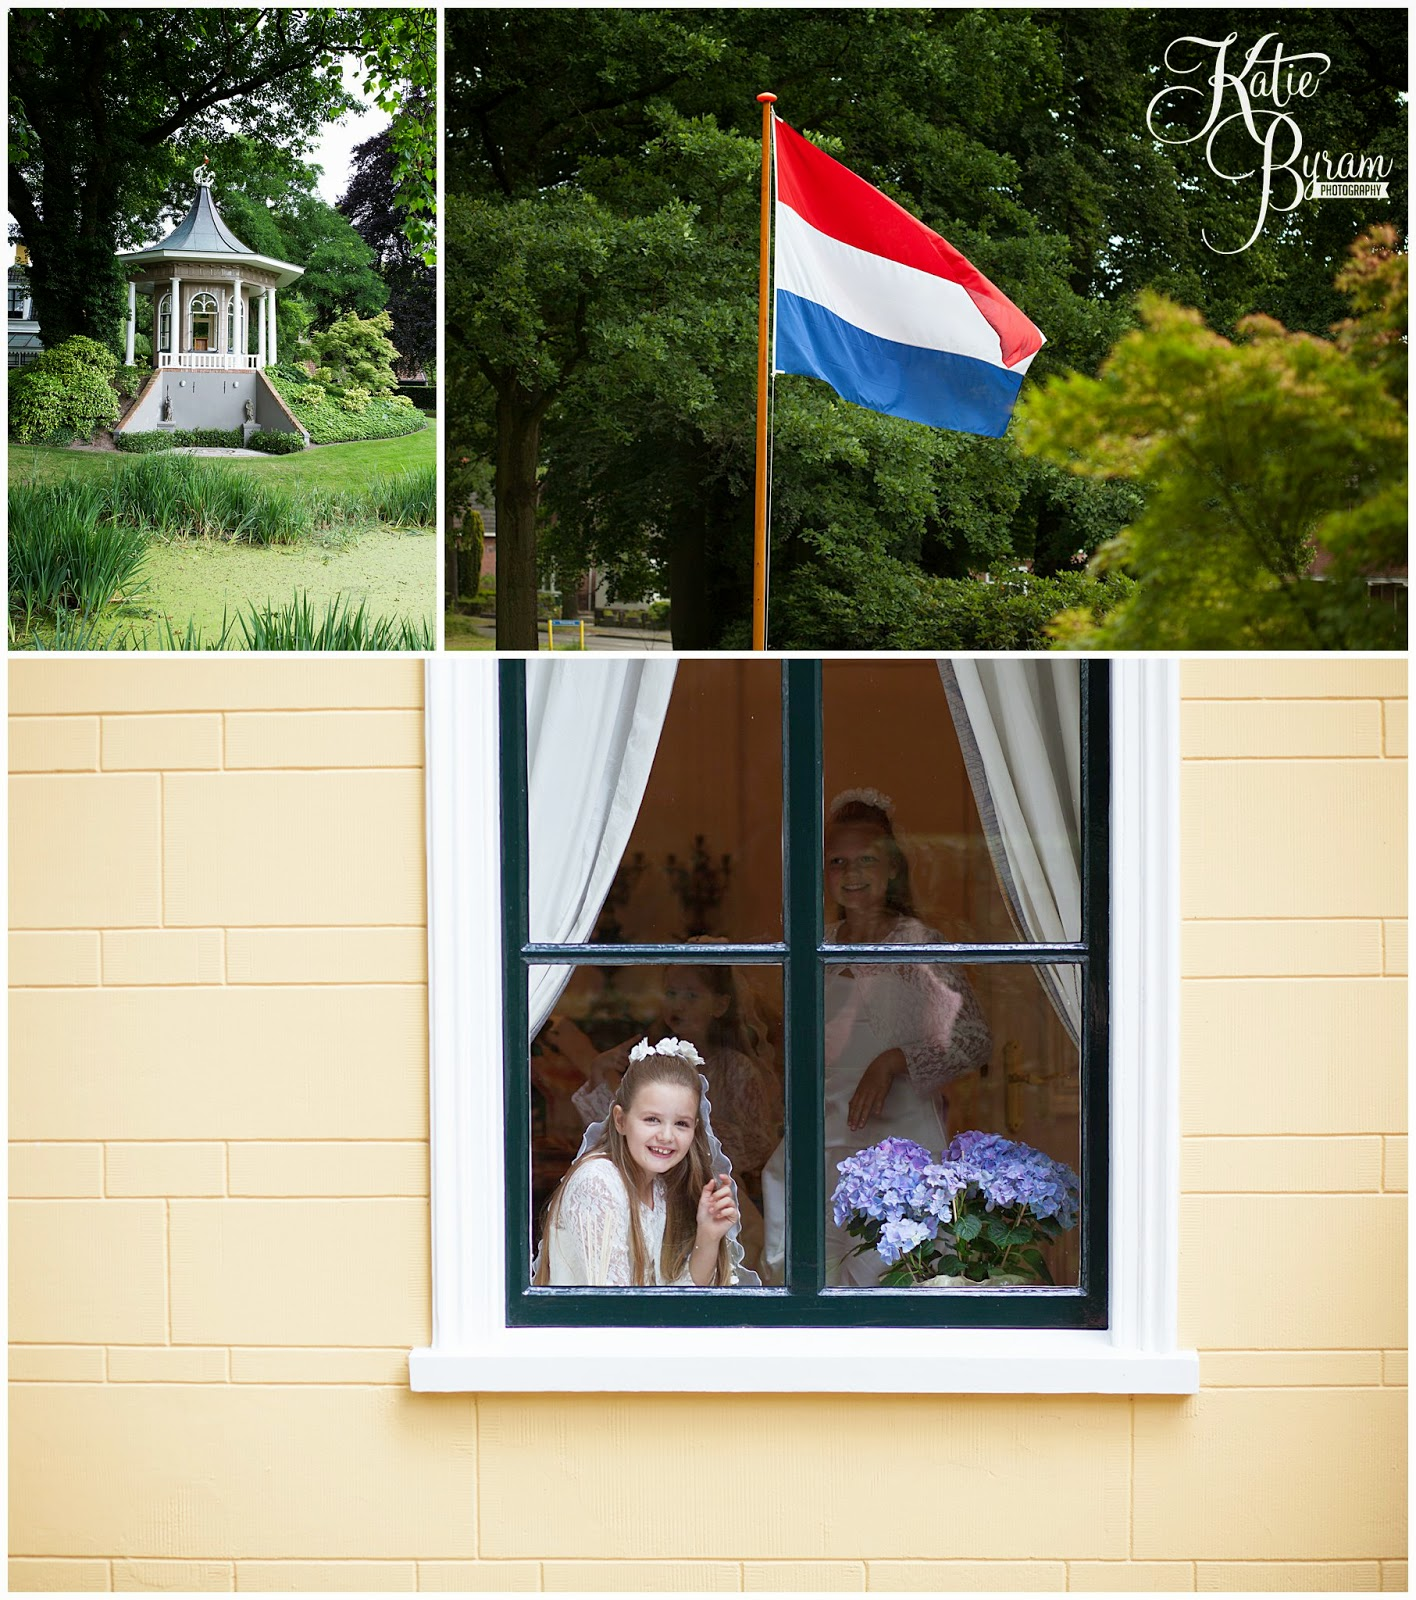 katie byram photography, dutch wedding photographer, winschoten wedding, katie byram photography, dutch wedding photographer, winschoten wedding, netherlands wedding, destination wedding photographer, netherlands wedding, destination wedding photographer, holland wedding, papa di grazzi